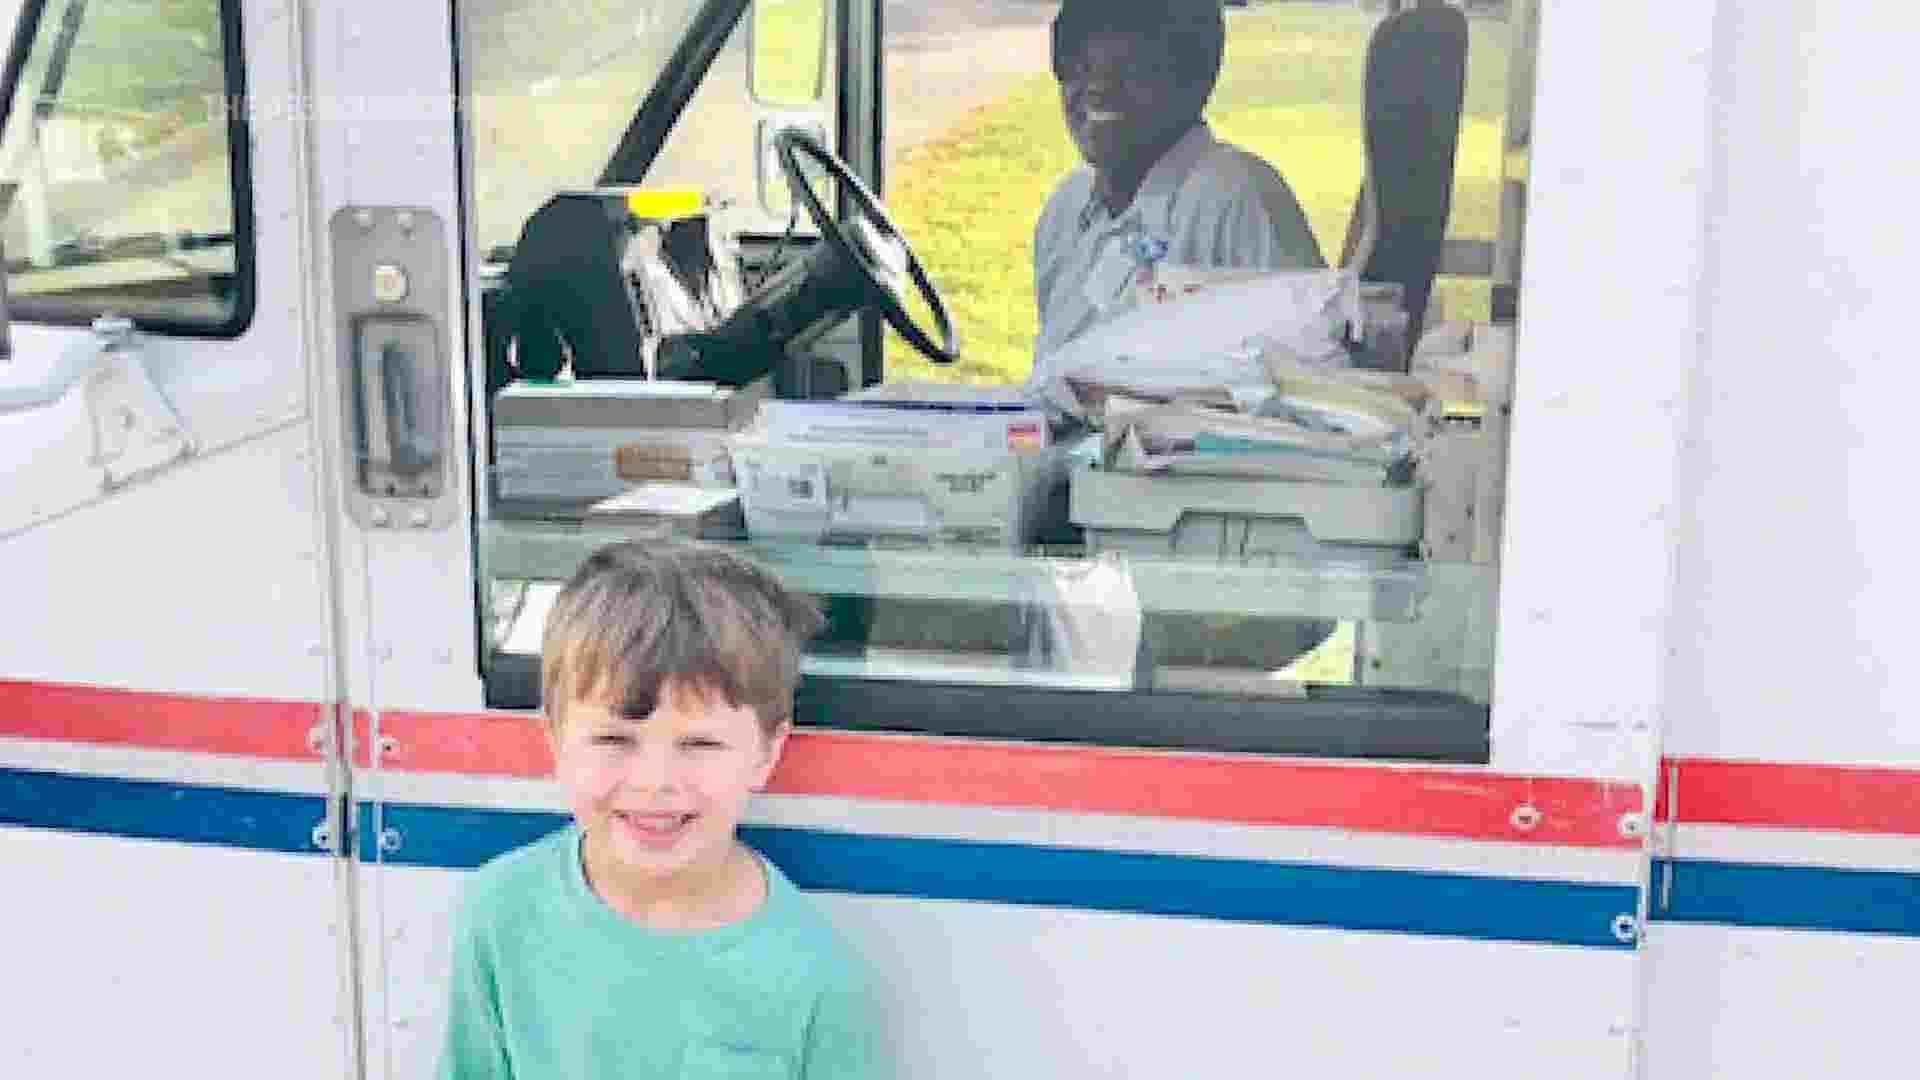 USA News Today - Mail carrier surprises boy with birthday gift | NewsBurrow thumbnail